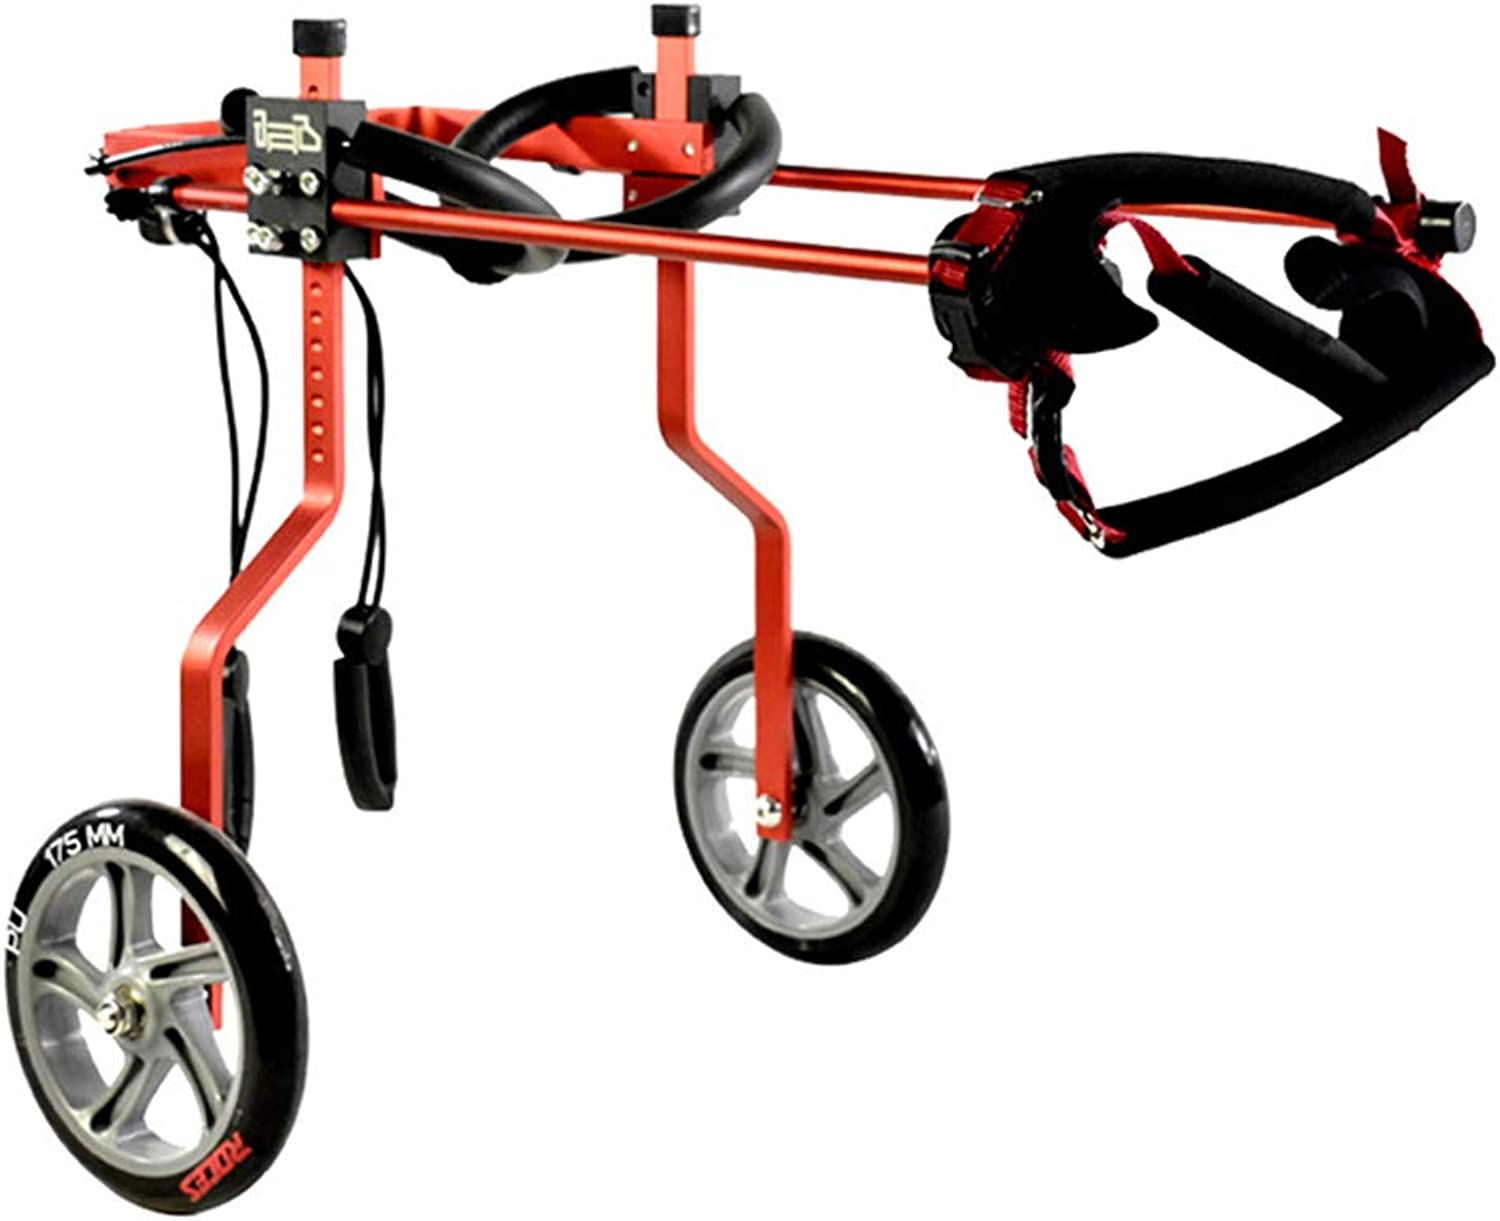 HIMA PETTR Dog Wheelchair, Adjustable, Veterinarian Approved, Hind Legs Rehabilitation Aid for Aging,Red,XXXL